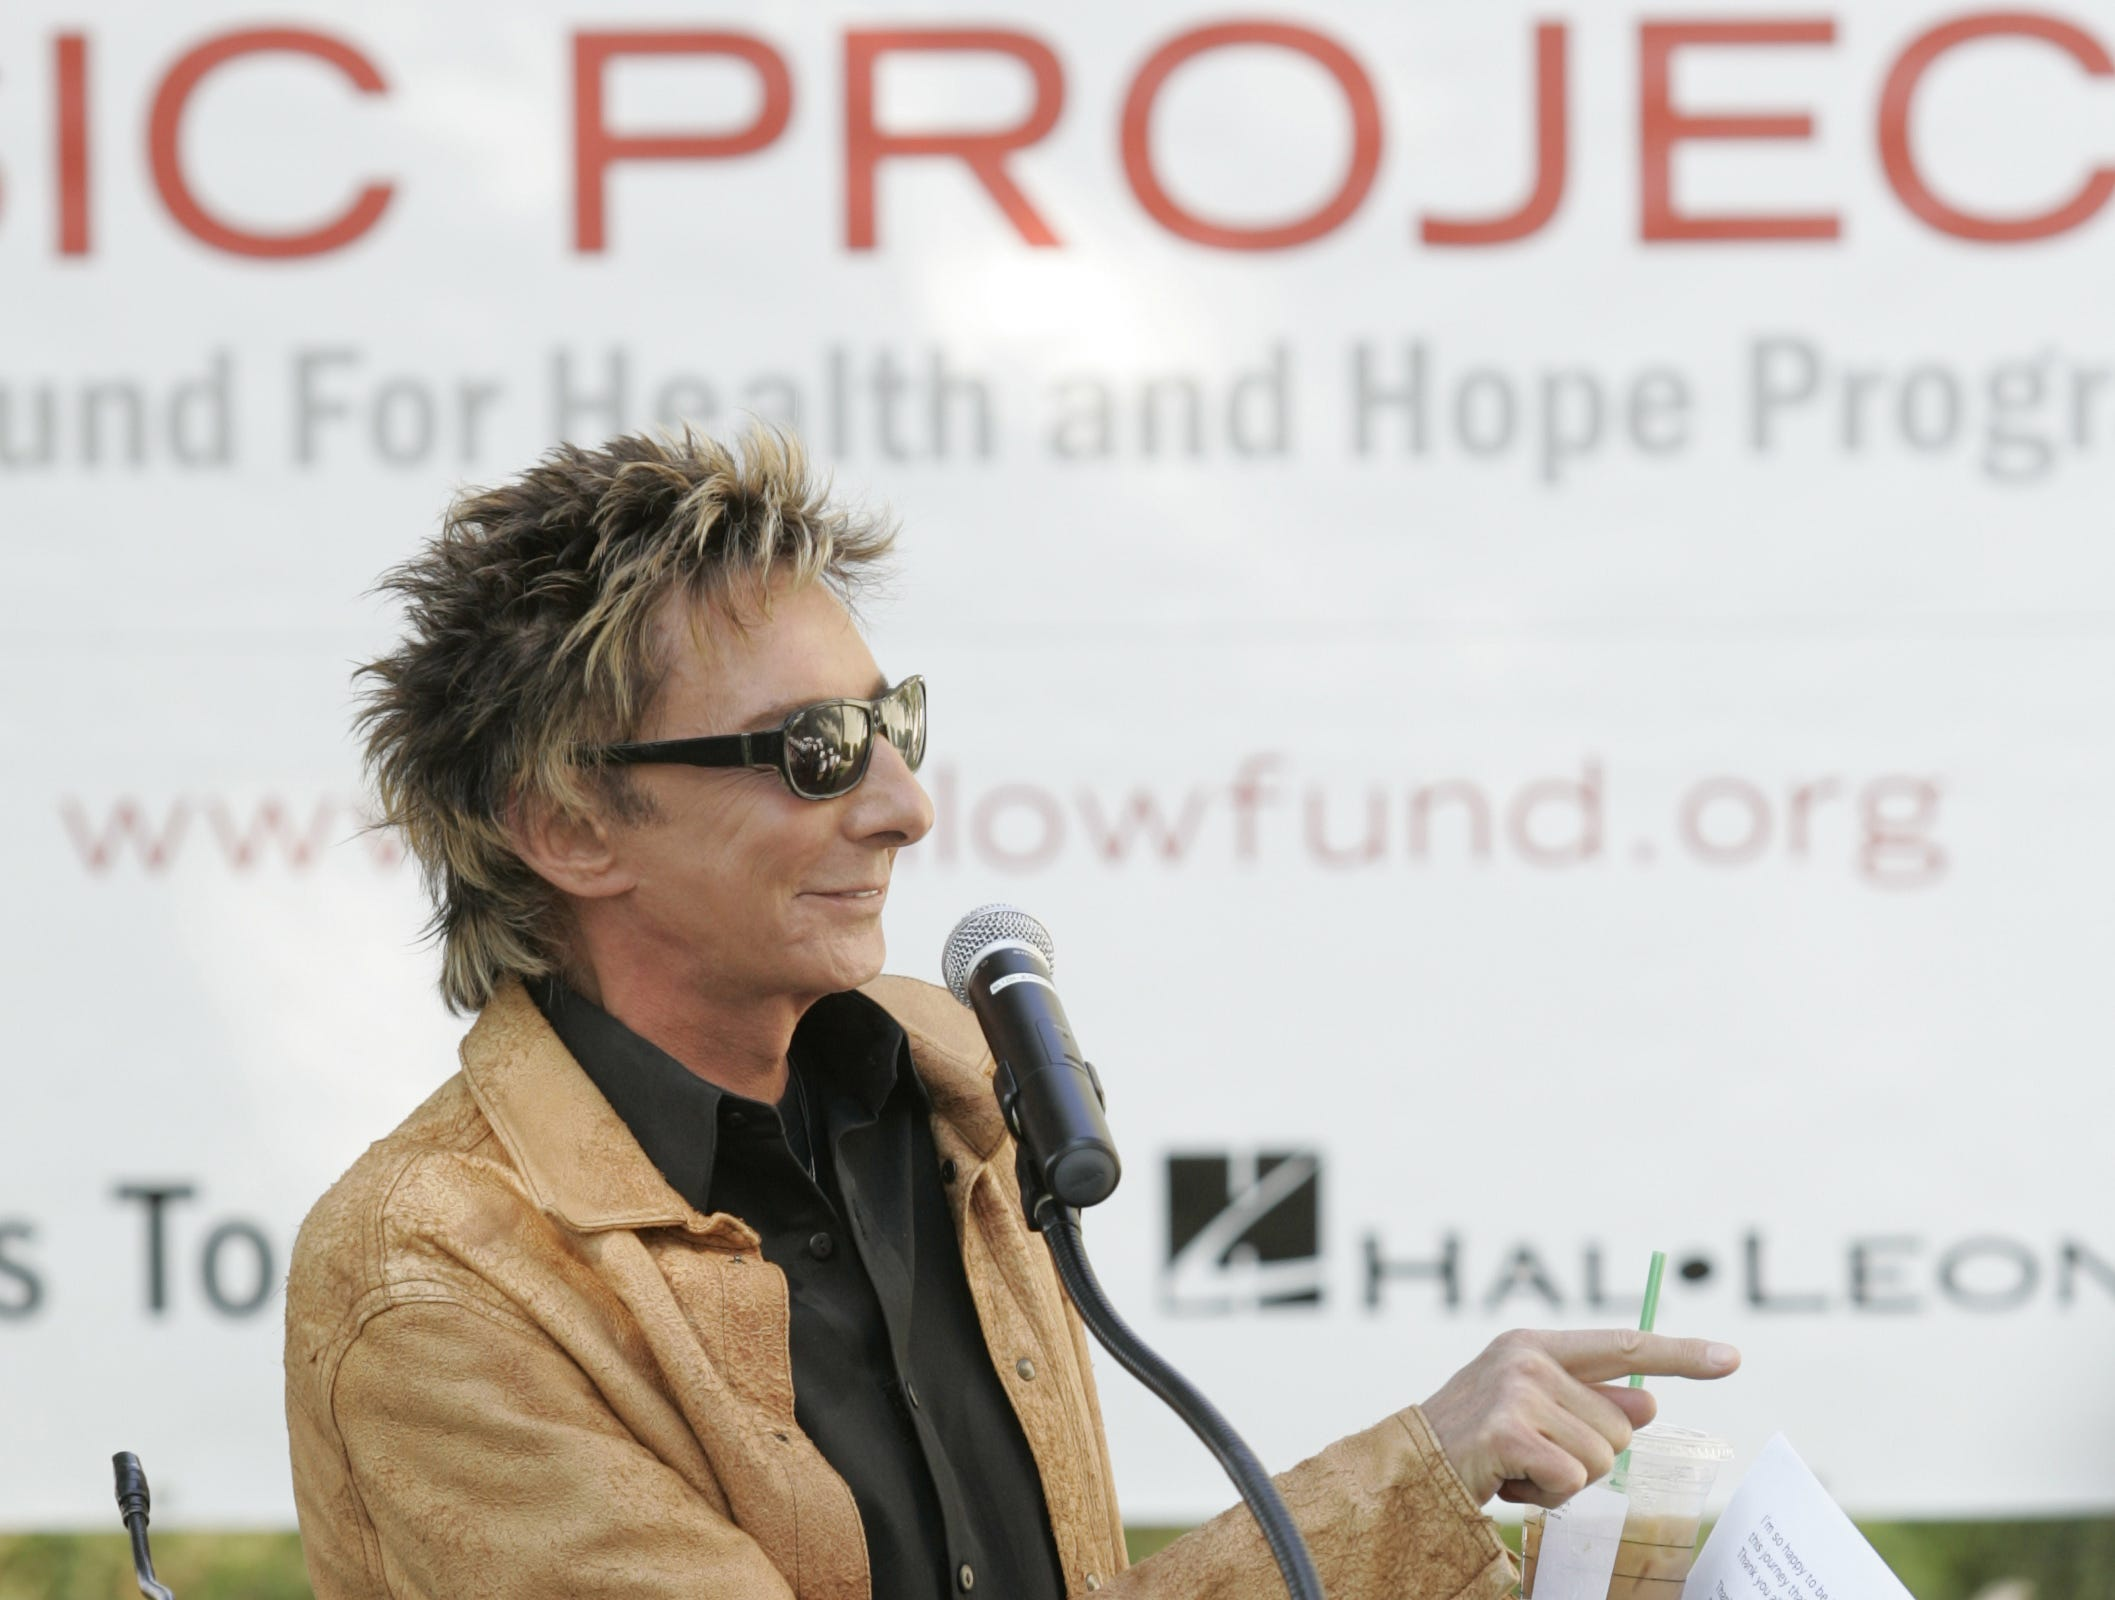 Barry Manilow praises the Palm Springs High School Jazz Band during the announcement of a $500,000 donation of instruments and musical supplies to 20 Coachella Valley schools on Sept. 29, 2008, at Palm Springs High School.